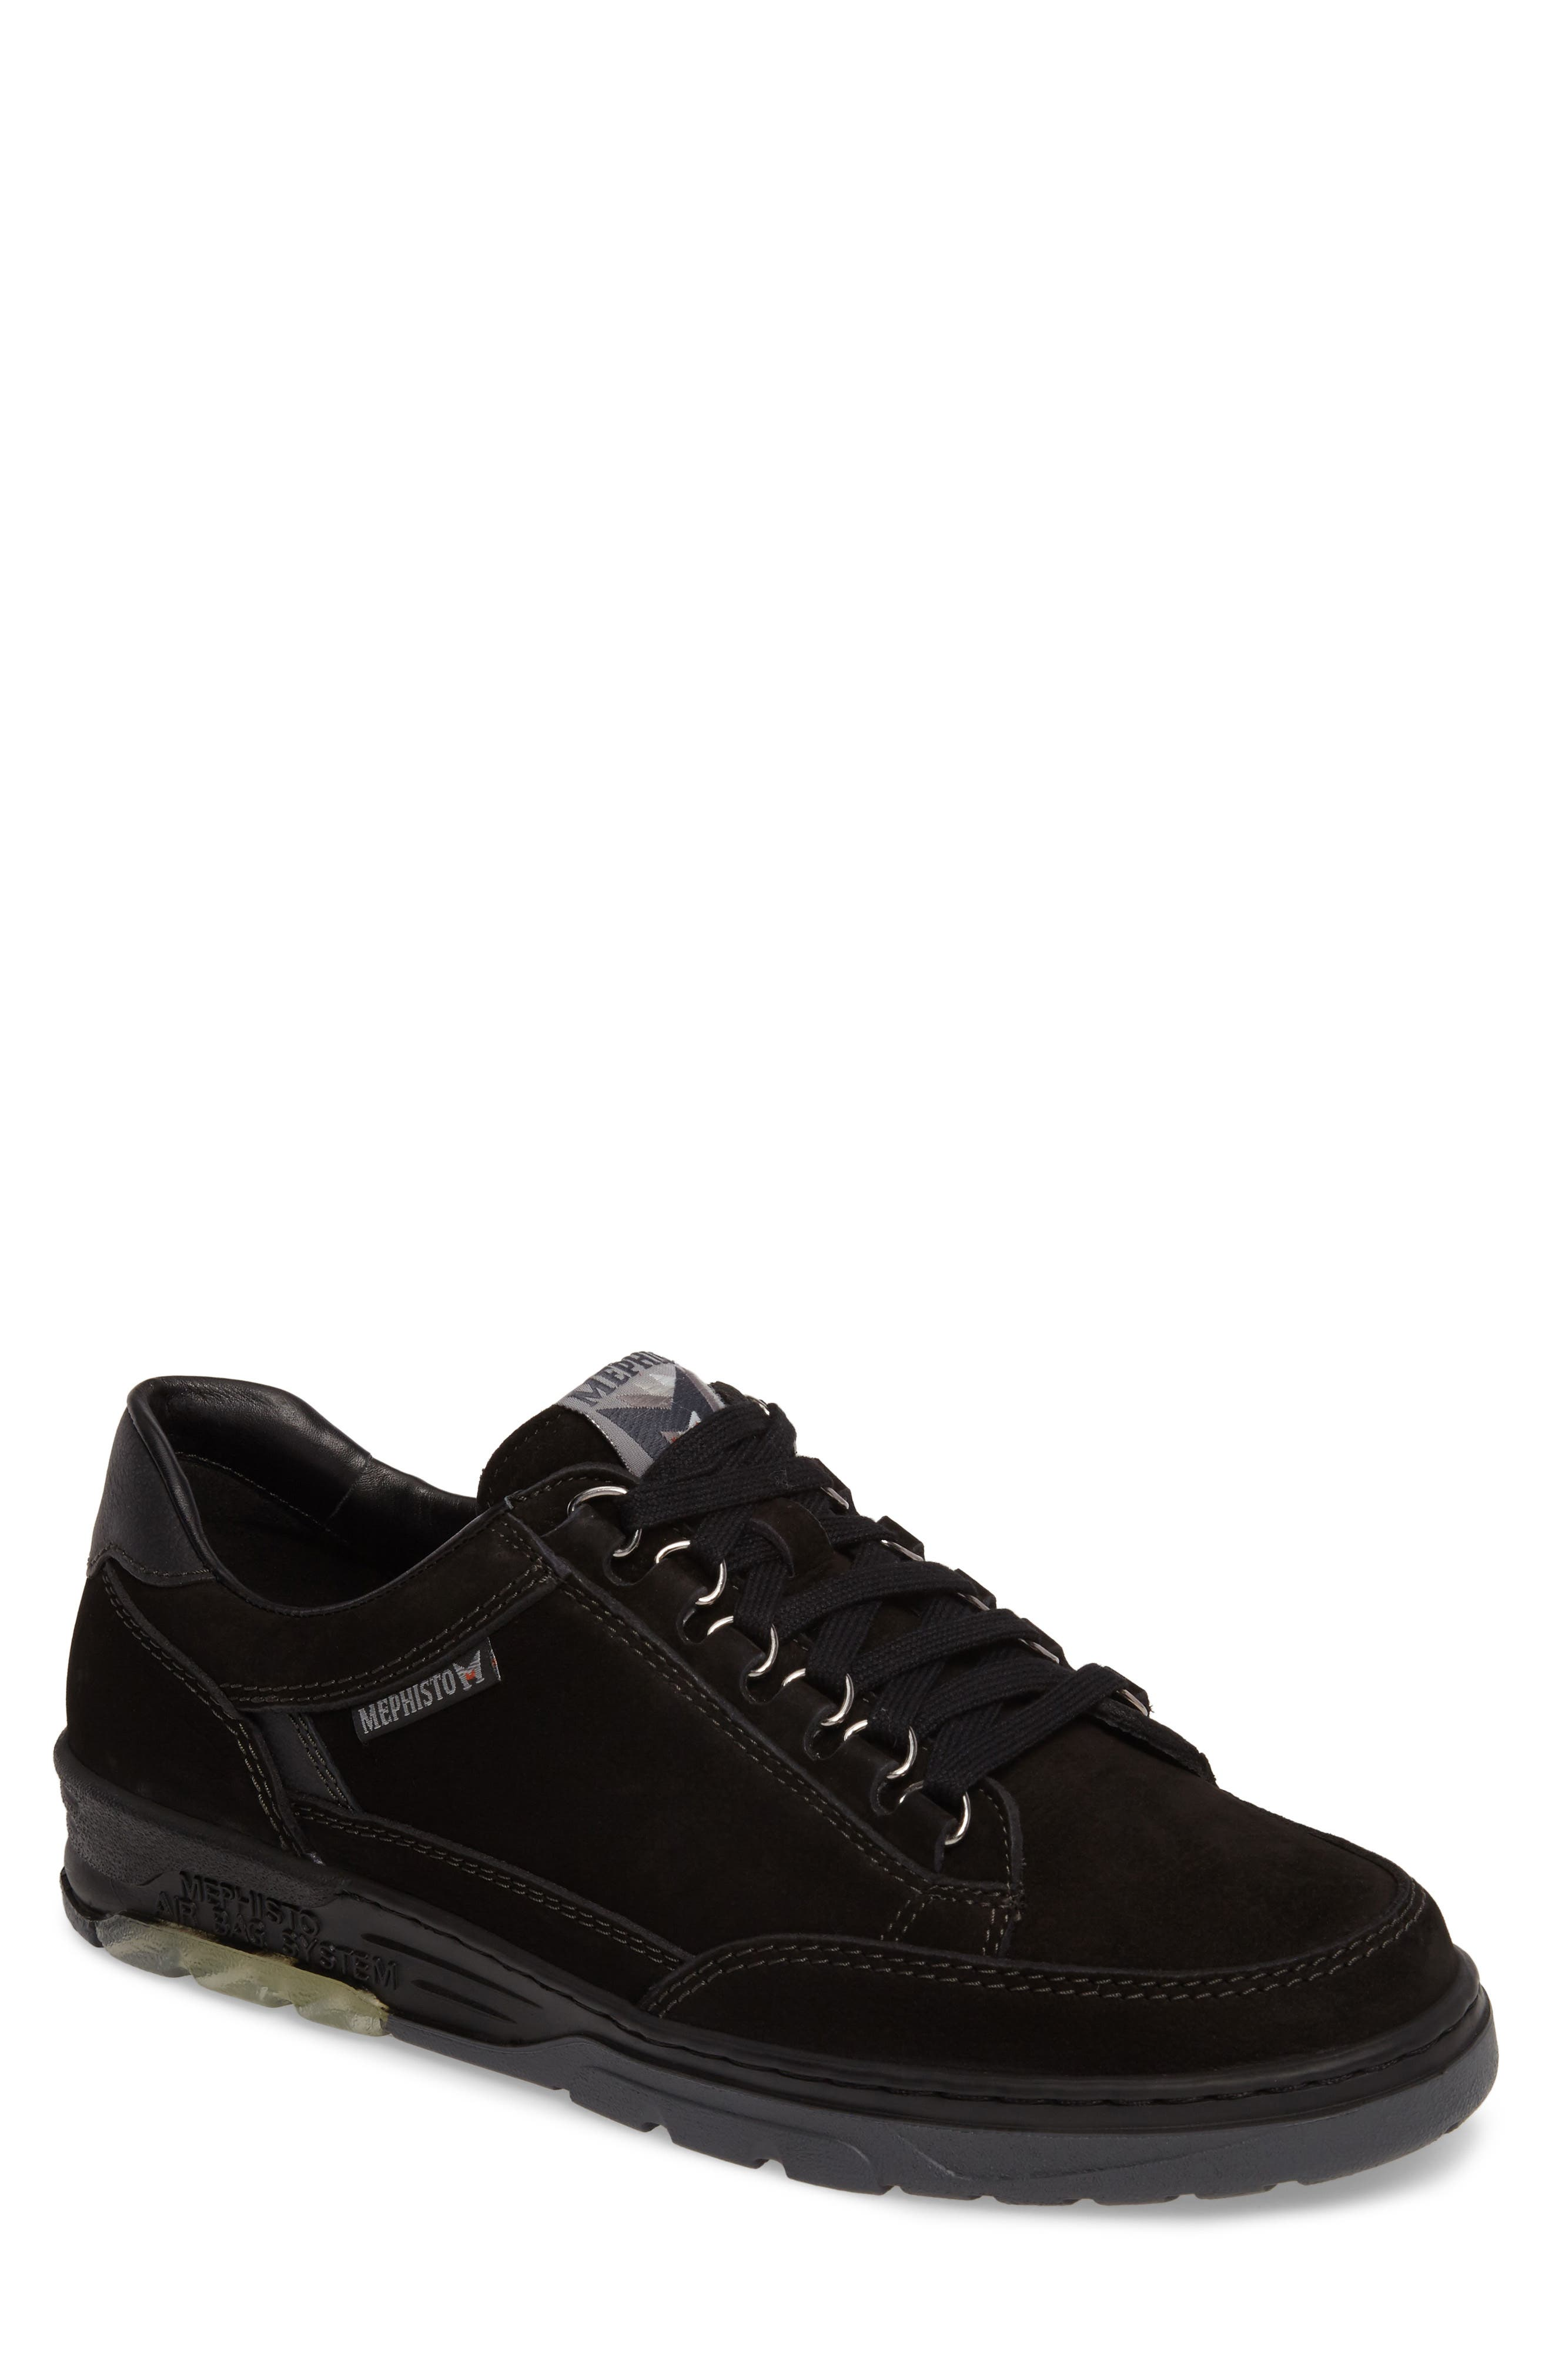 MEPHISTO Mick Sneaker, Main, color, 011